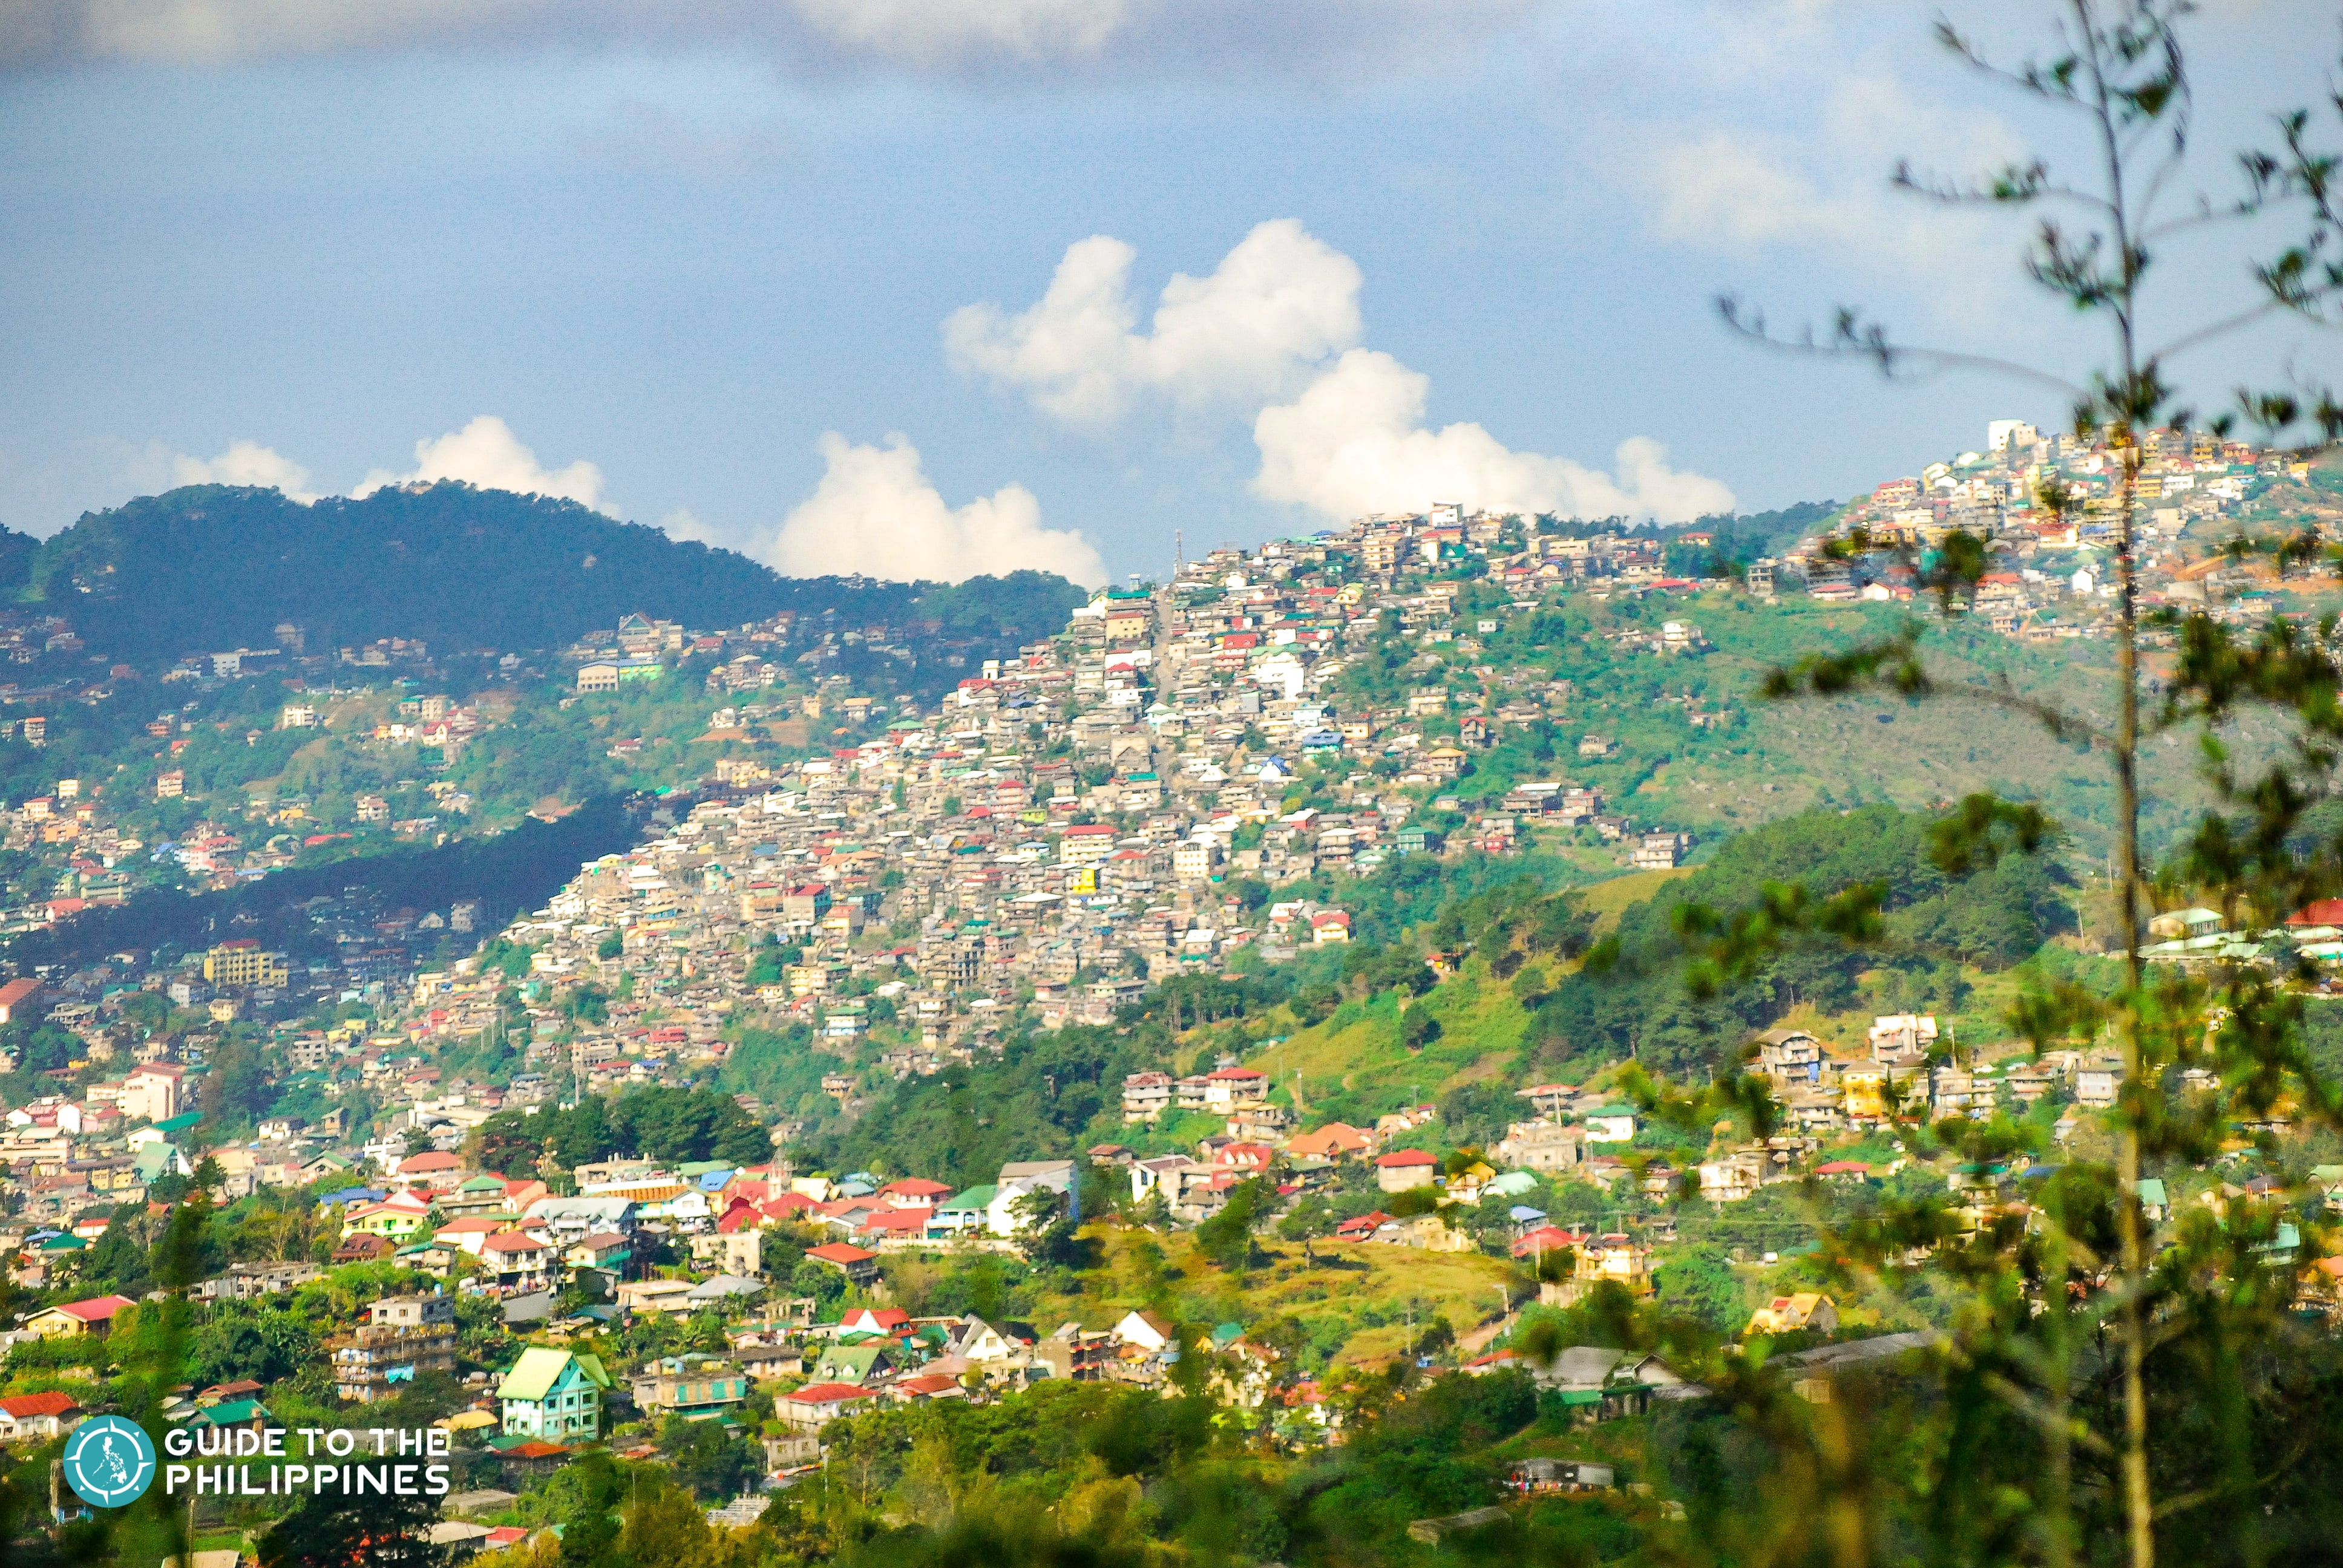 View of Baguio City from Mines View Park